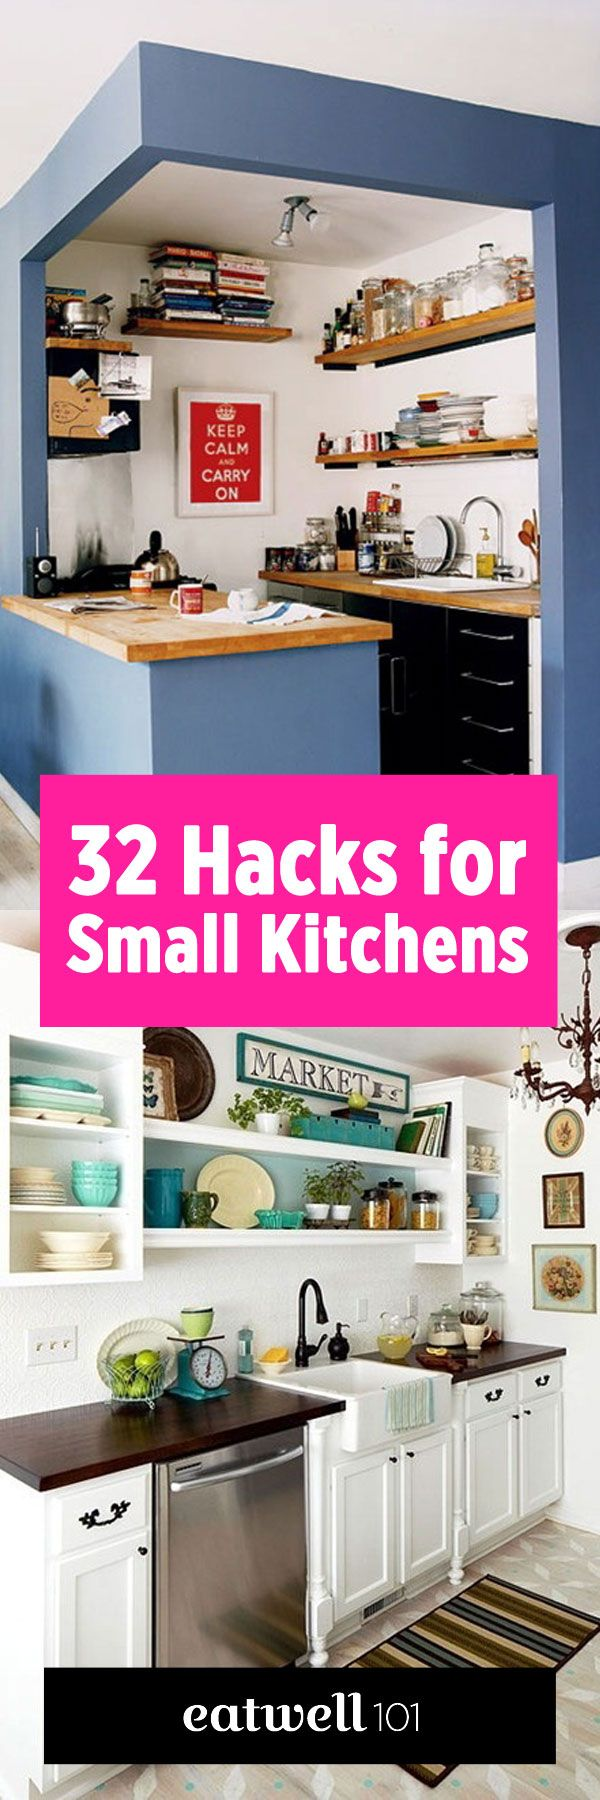 best ideas about small kitchen designs small 17 best ideas about small kitchen designs small kitchens small kitchen island and kitchen layouts